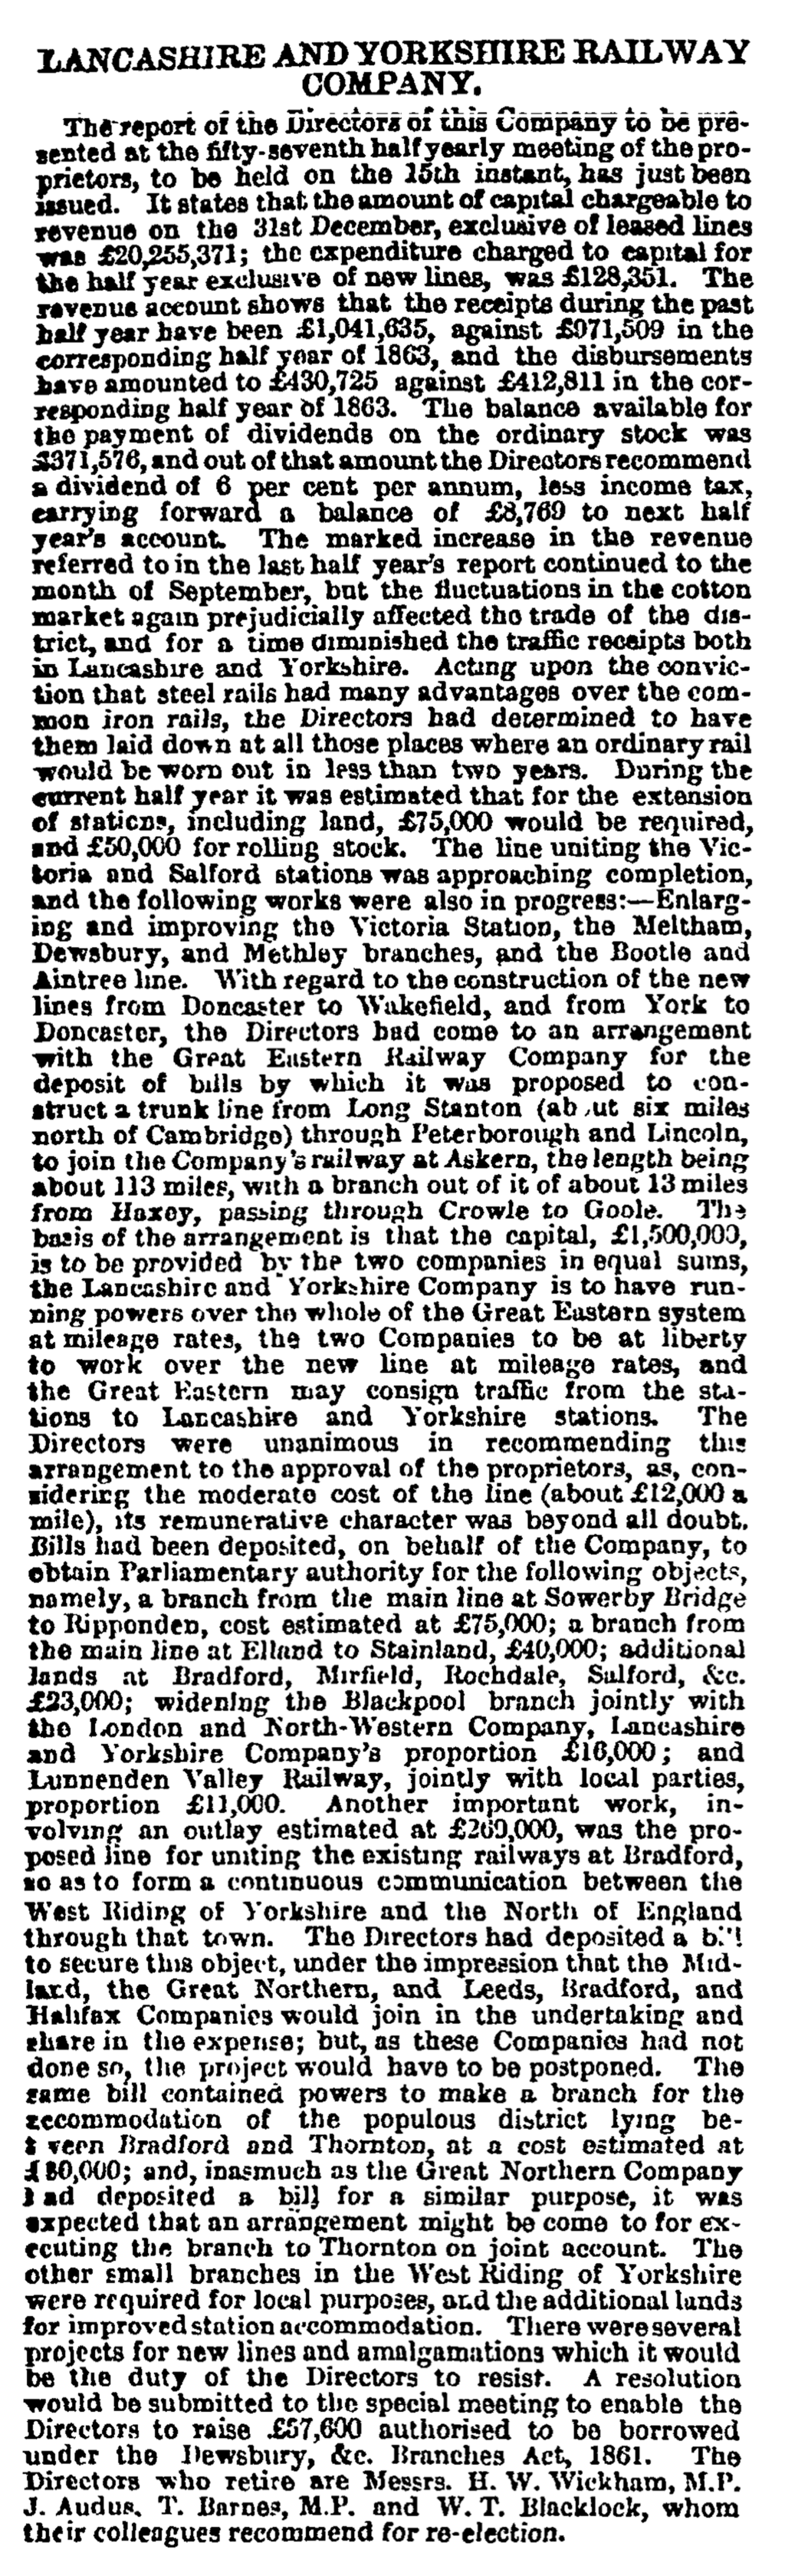 Lancashire-and-Yorkshire-Railway-Company-Manchester-Guardian-1828-1900-09-Feb-1865.png